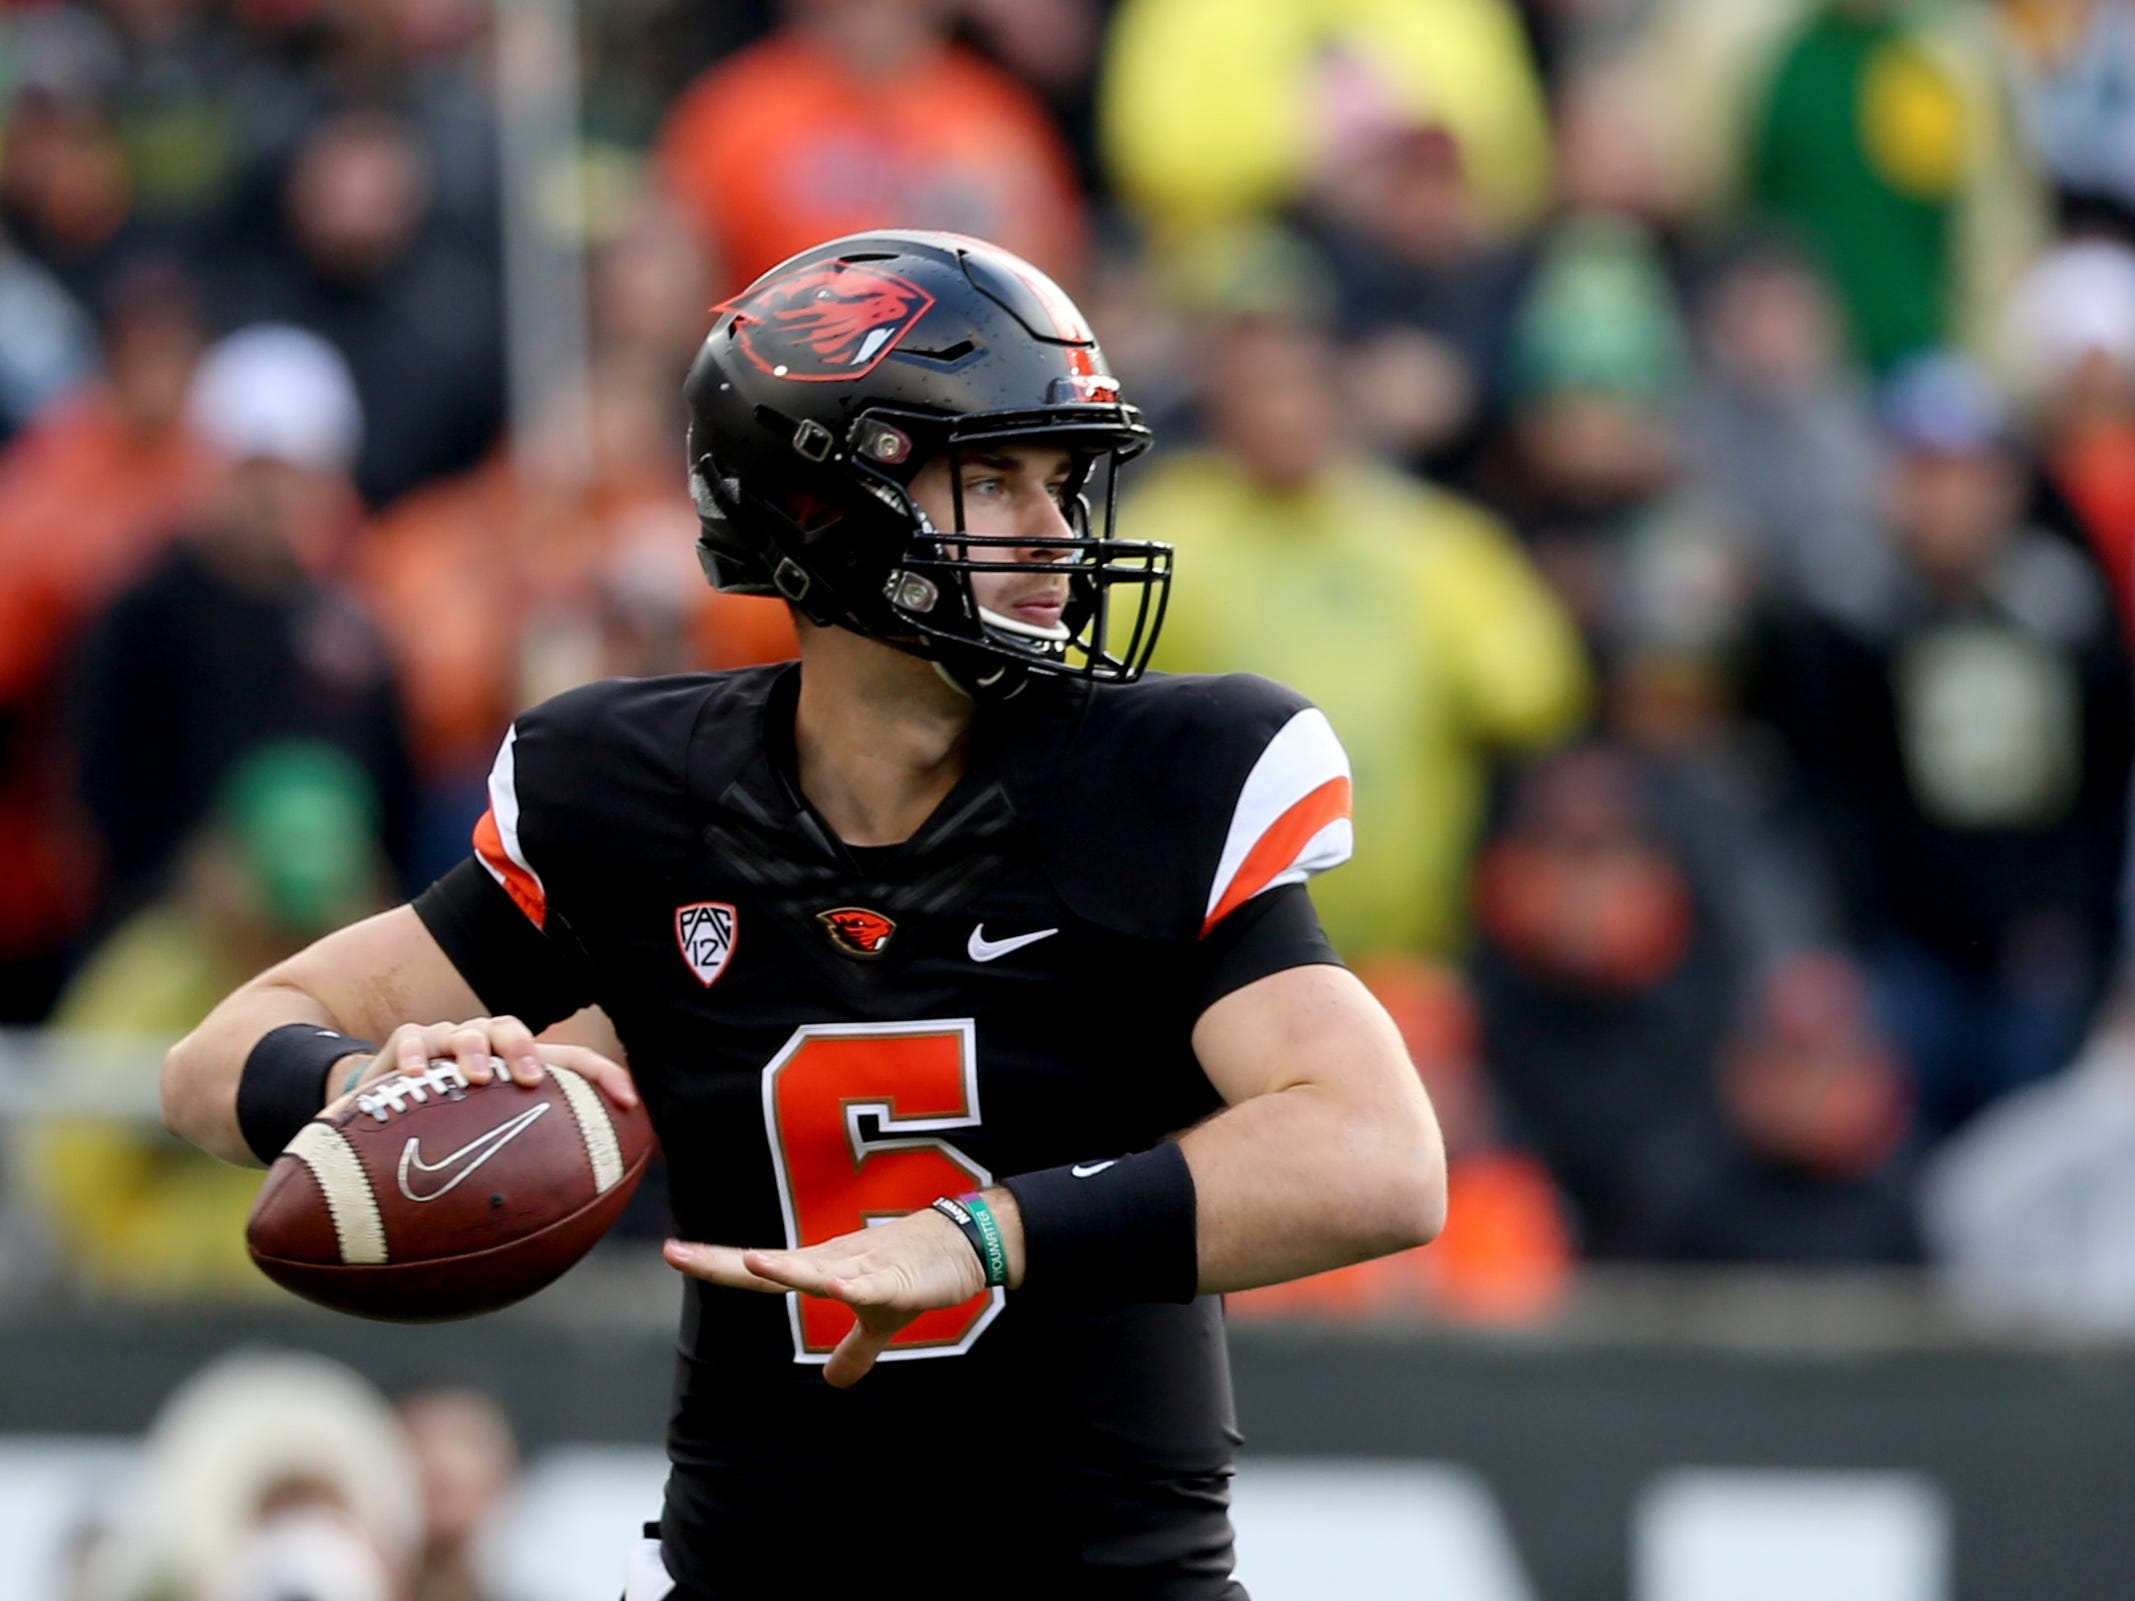 Oregon State's Jake Luton (6) looks to pass the ball in the Oregon vs. Oregon State Civil war football game at Oregon State University in Corvallis on Friday, Nov. 23, 2018.